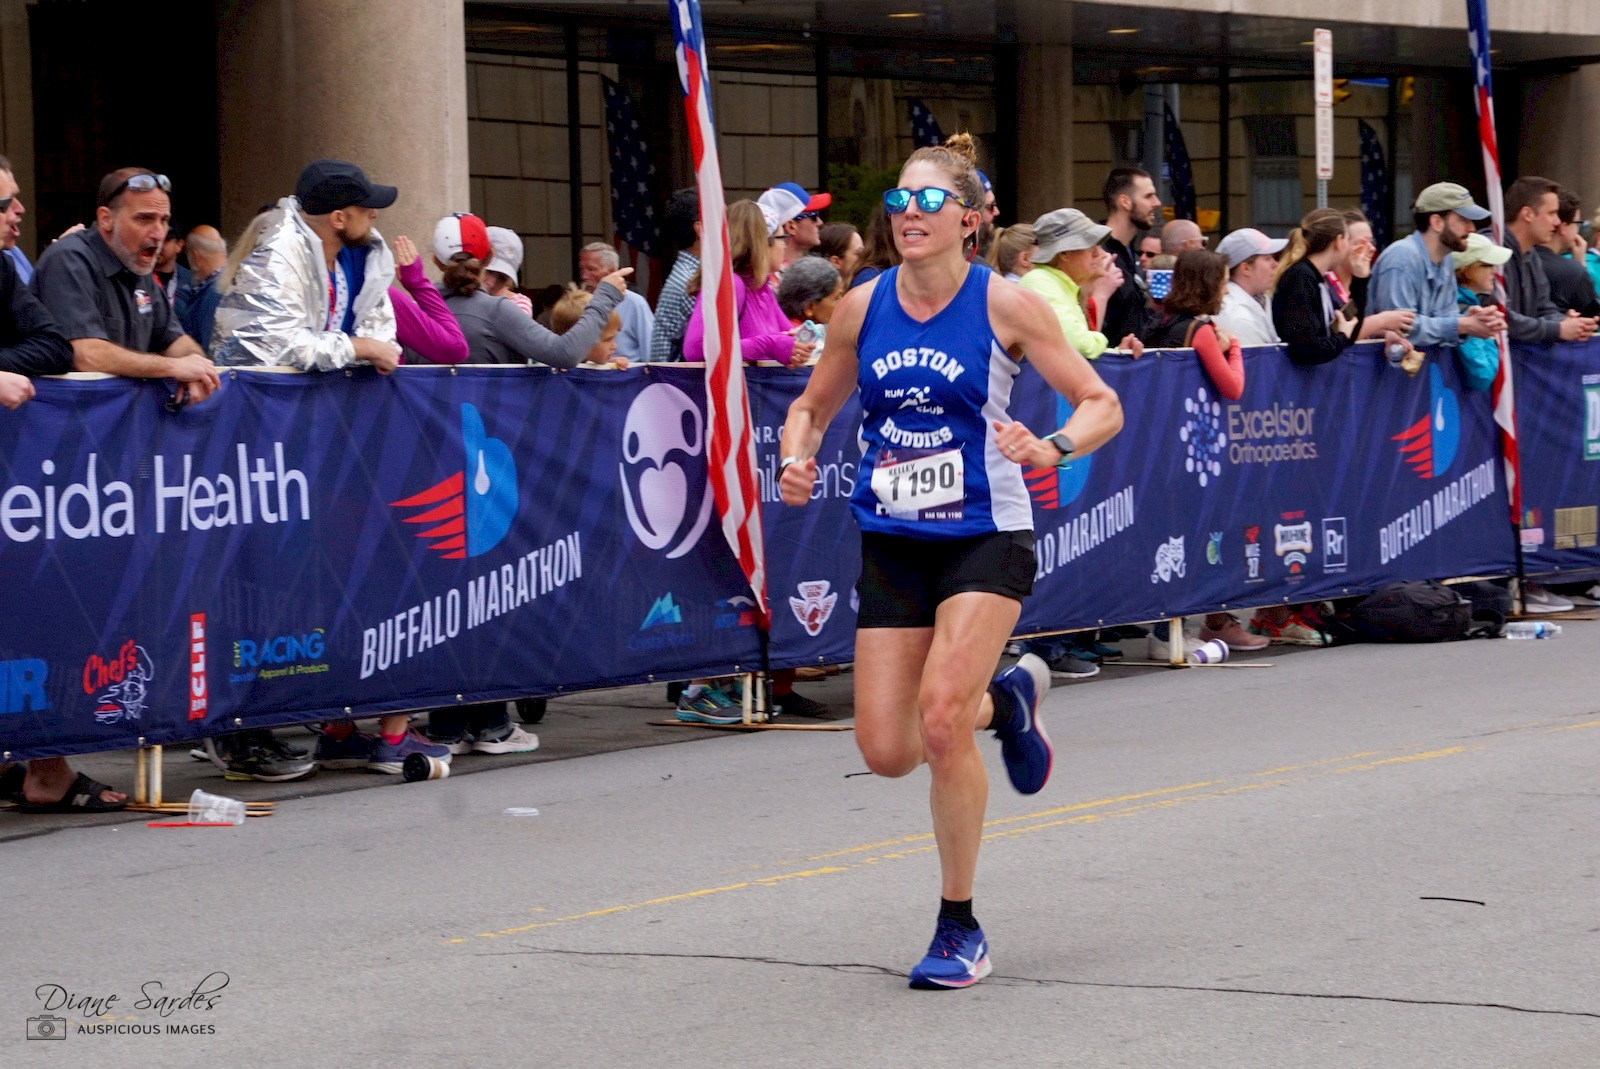 Buffalo Marathon weekend 1023.jpg